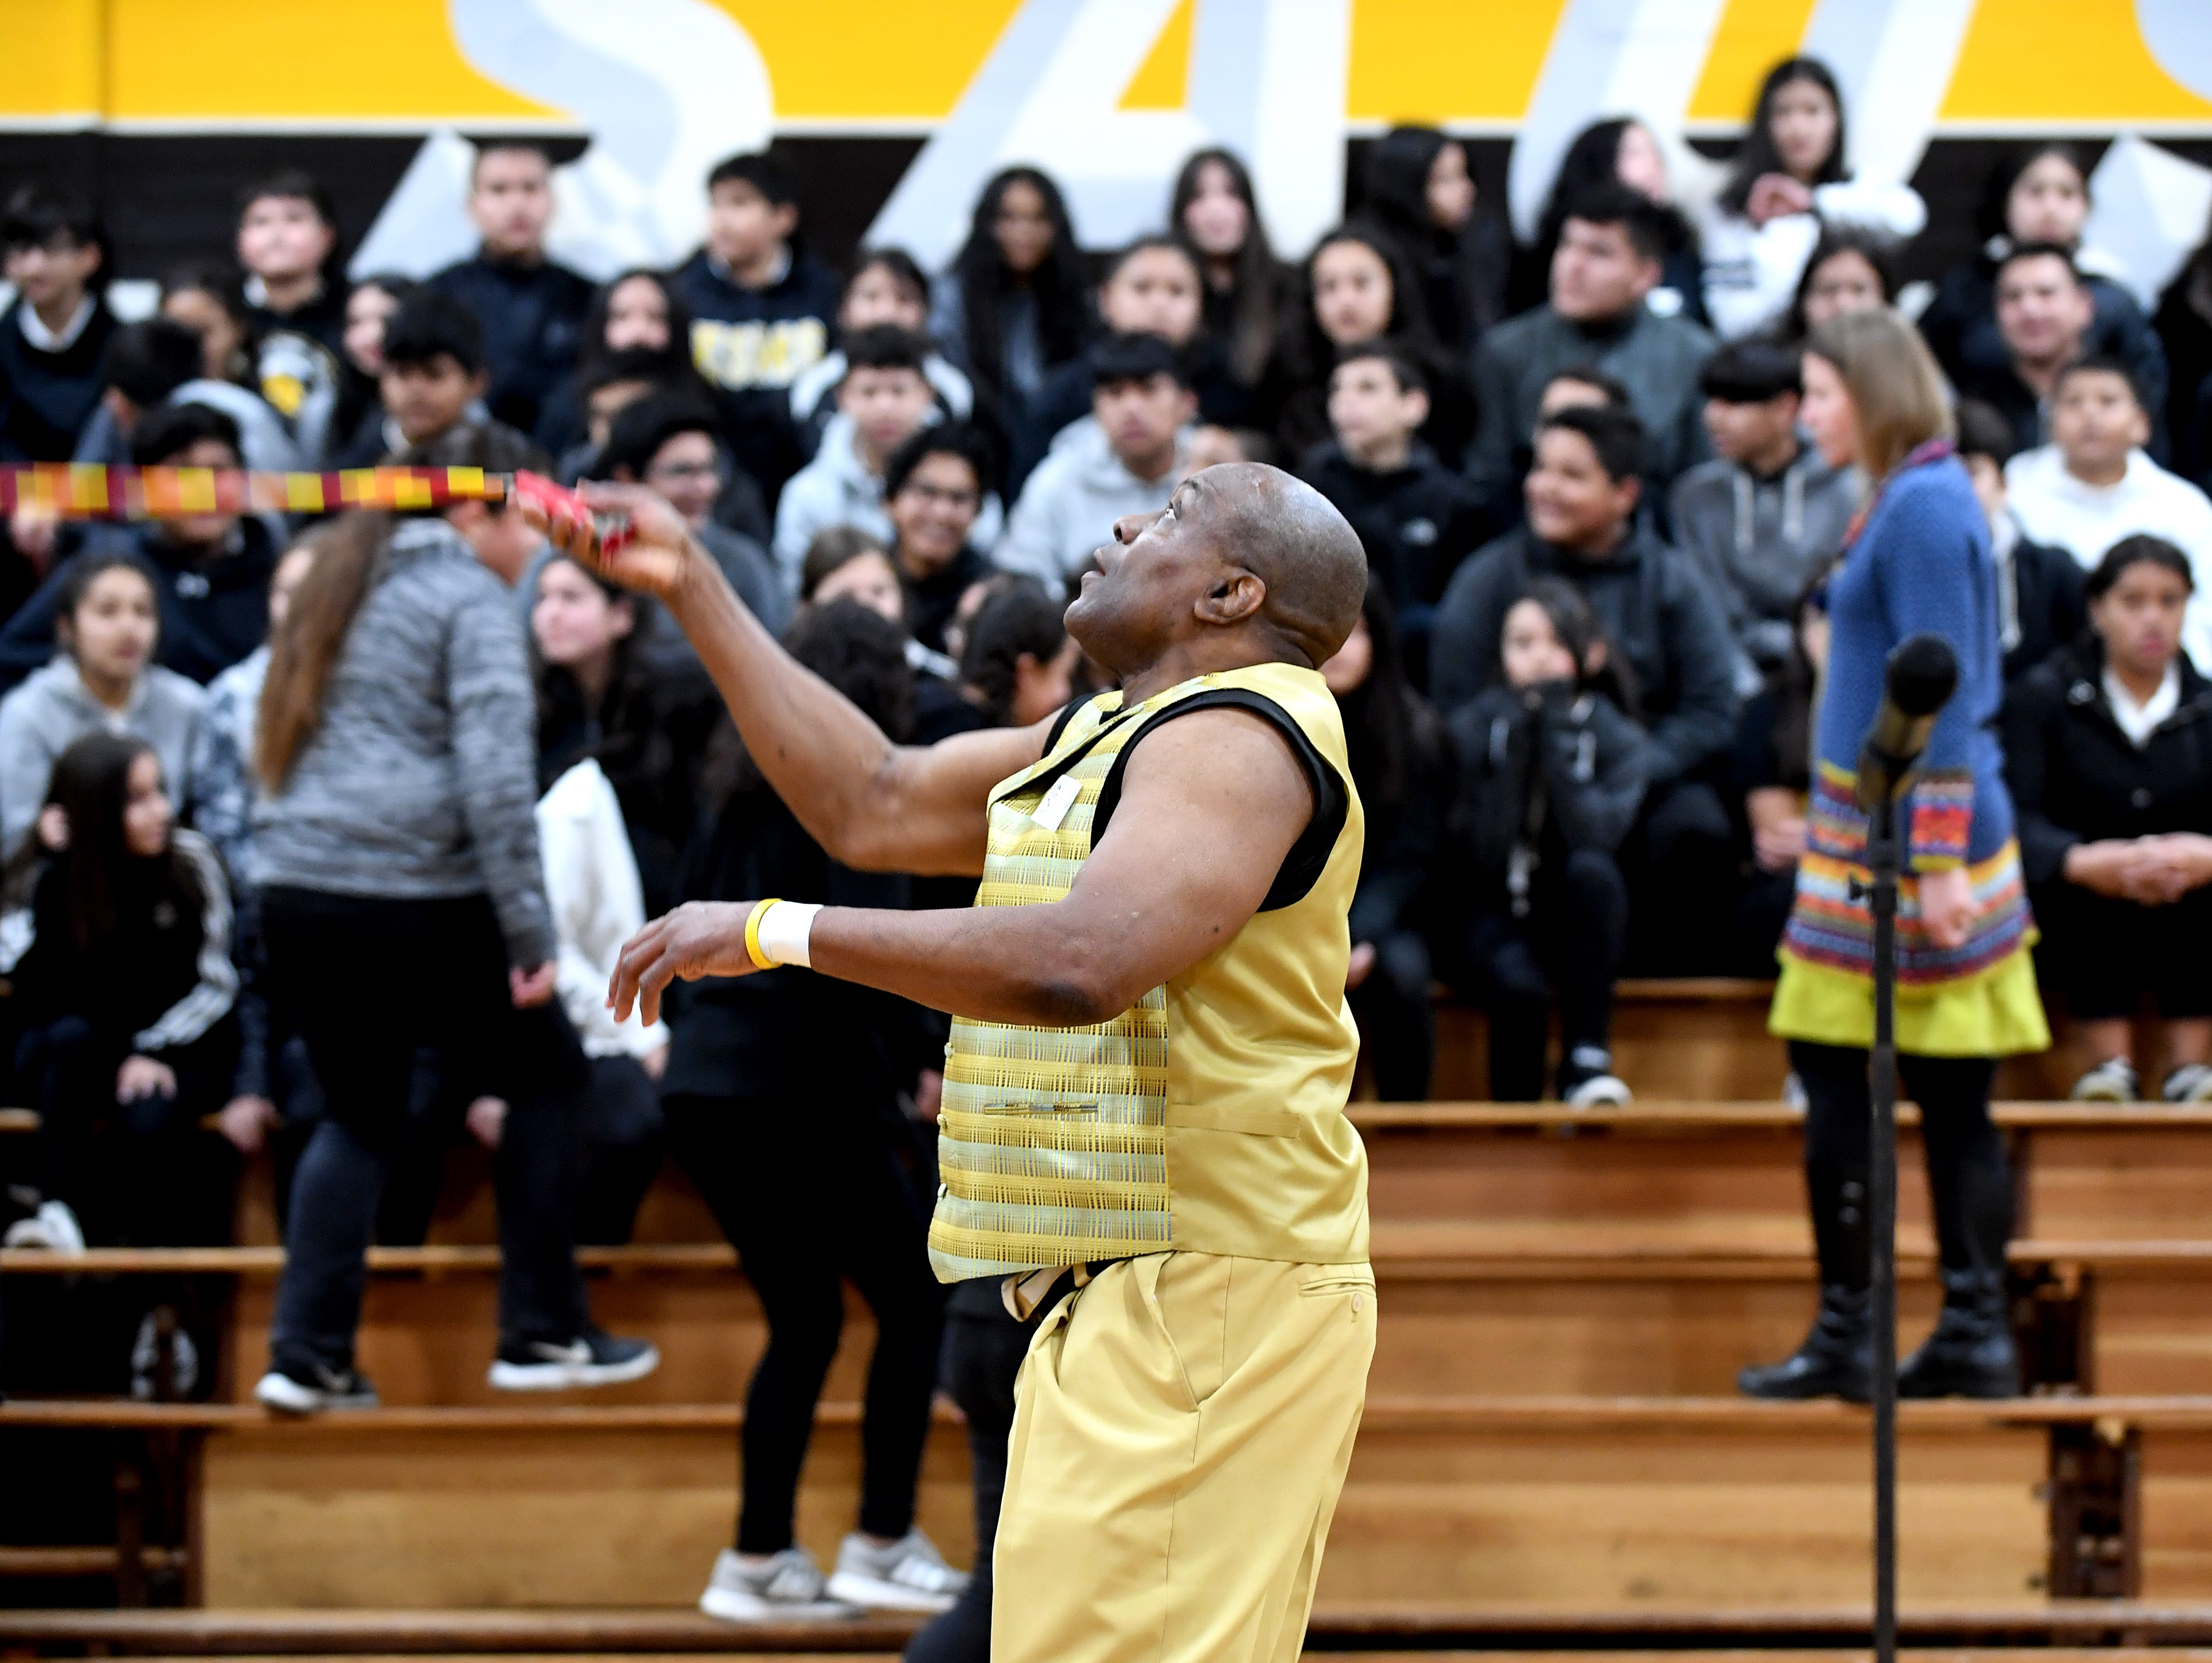 James Thompson warms up by catching a jumprope before speaking to students at his alma mater El Sausal Middle School.